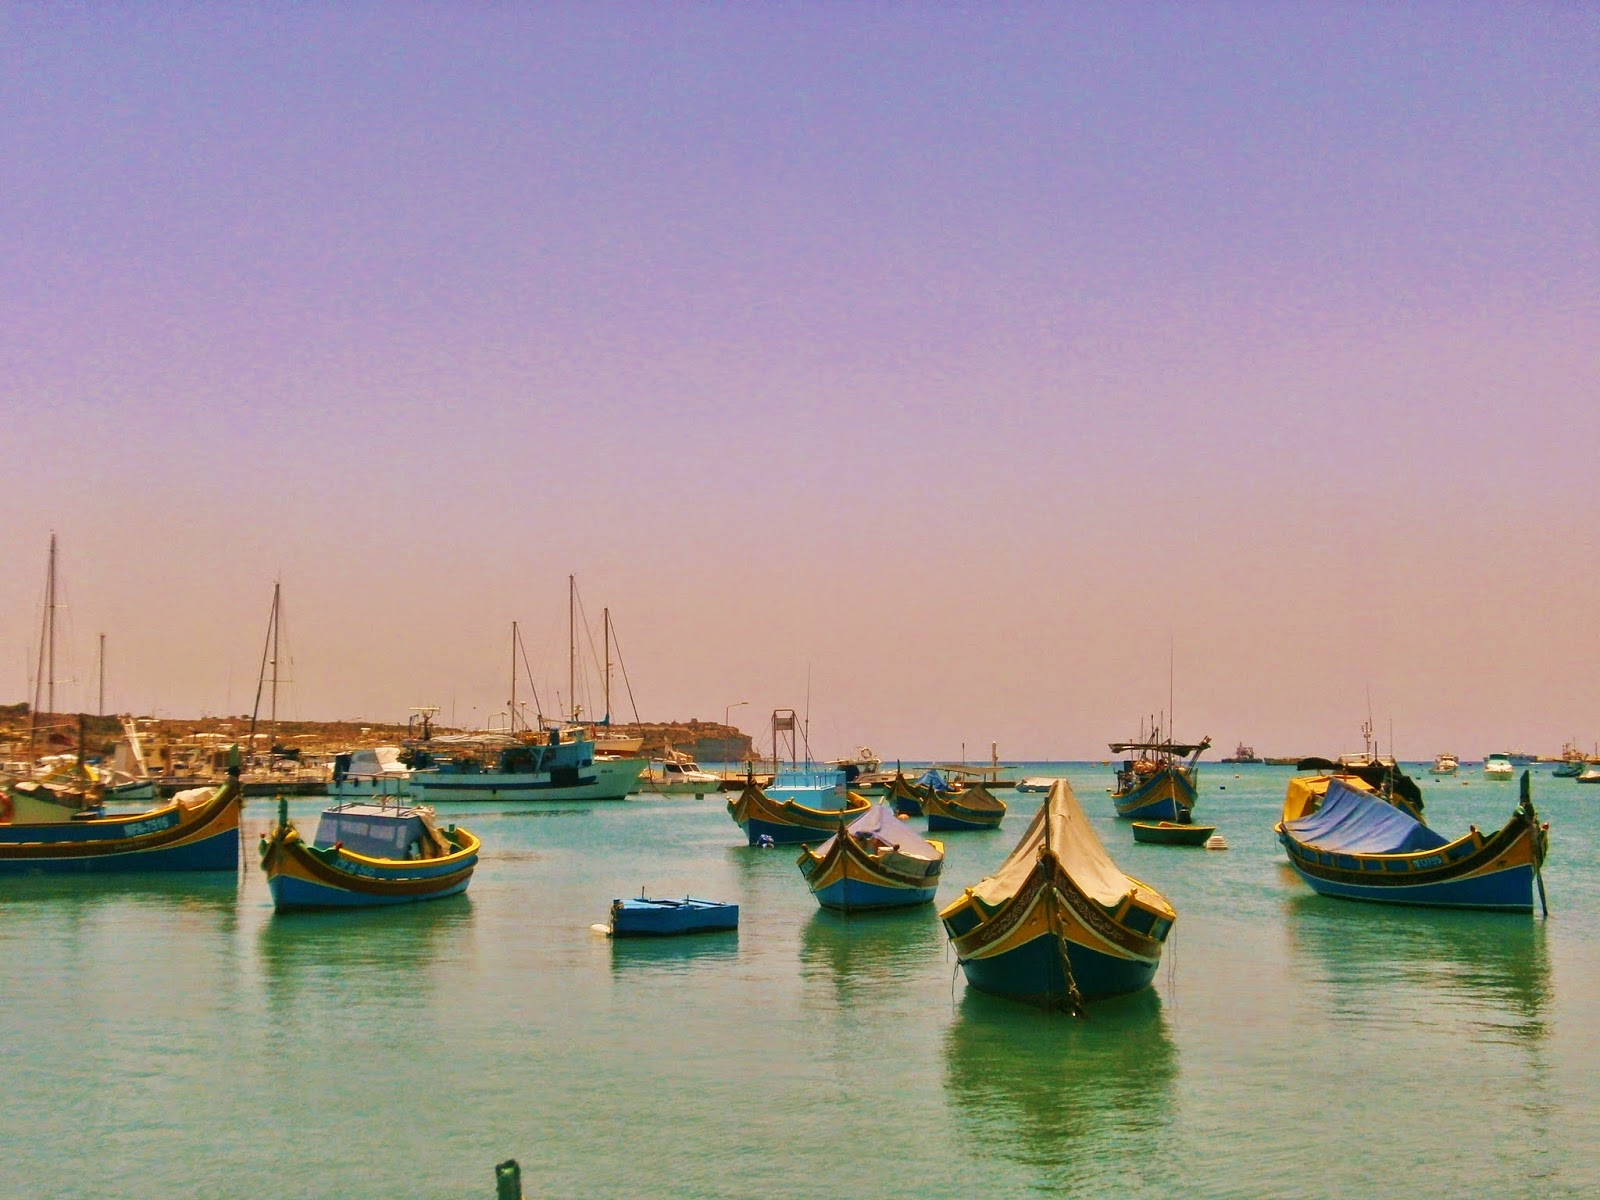 Fishing boats at Marsaxlokk, Malta